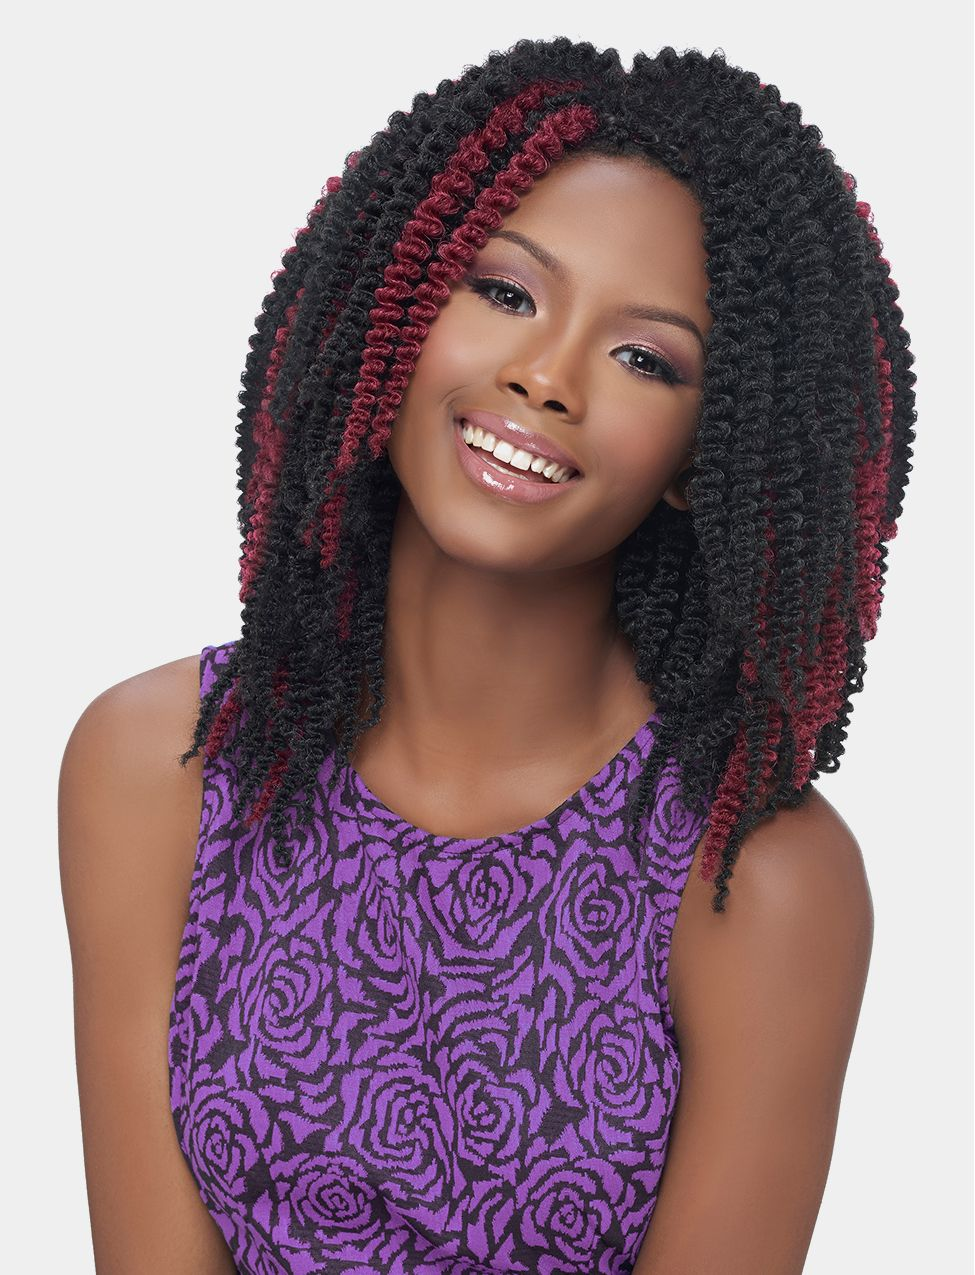 Harlem 125 Synthetic Braid Ghana Twist 10in Crochet Hair Weave